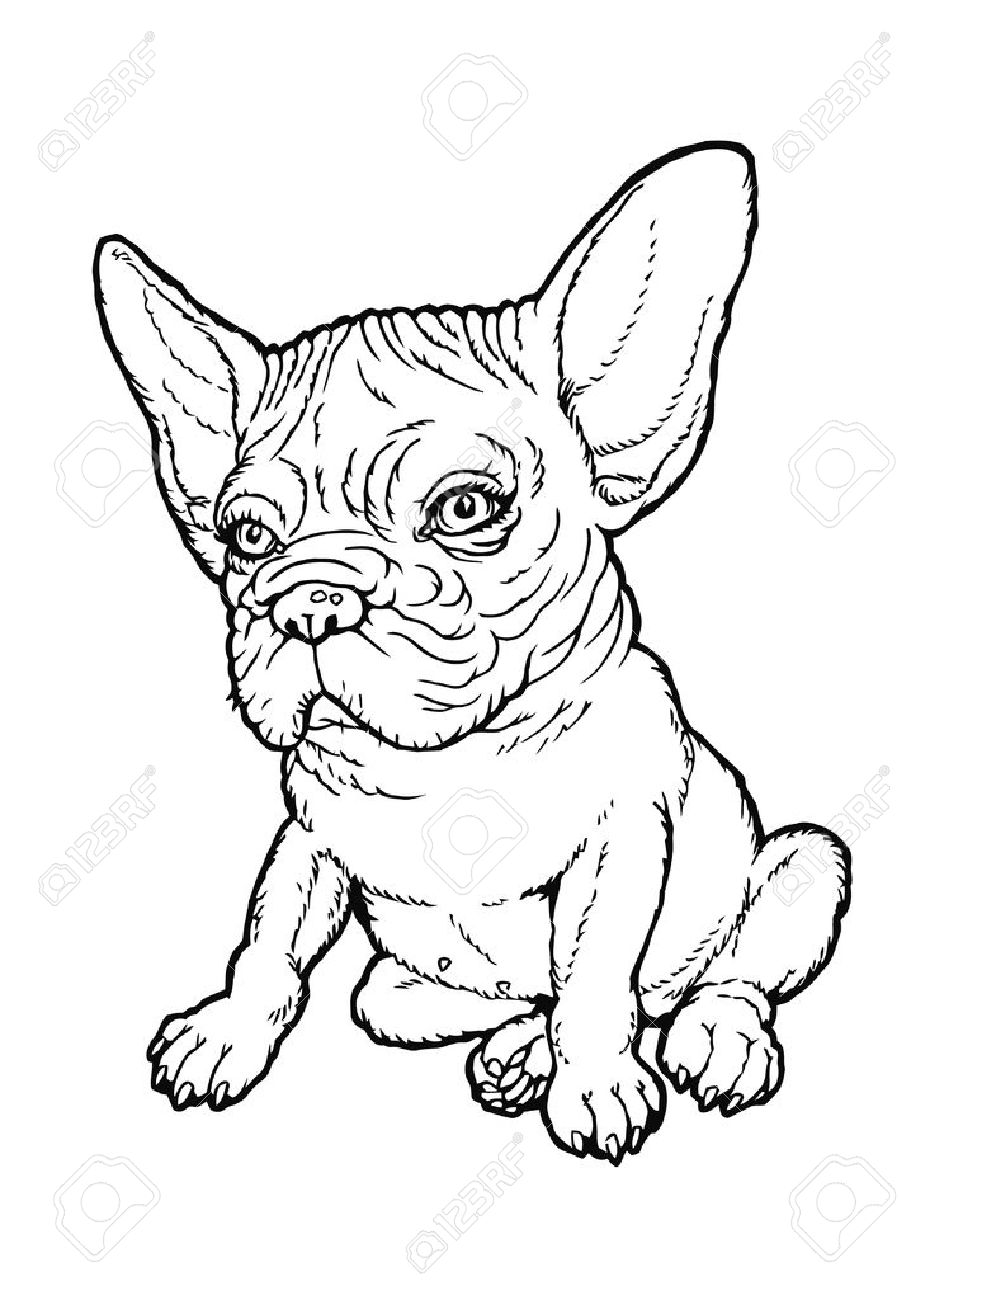 996x1300 Black And White Line Drawing Plump French Bulldog Puppy.